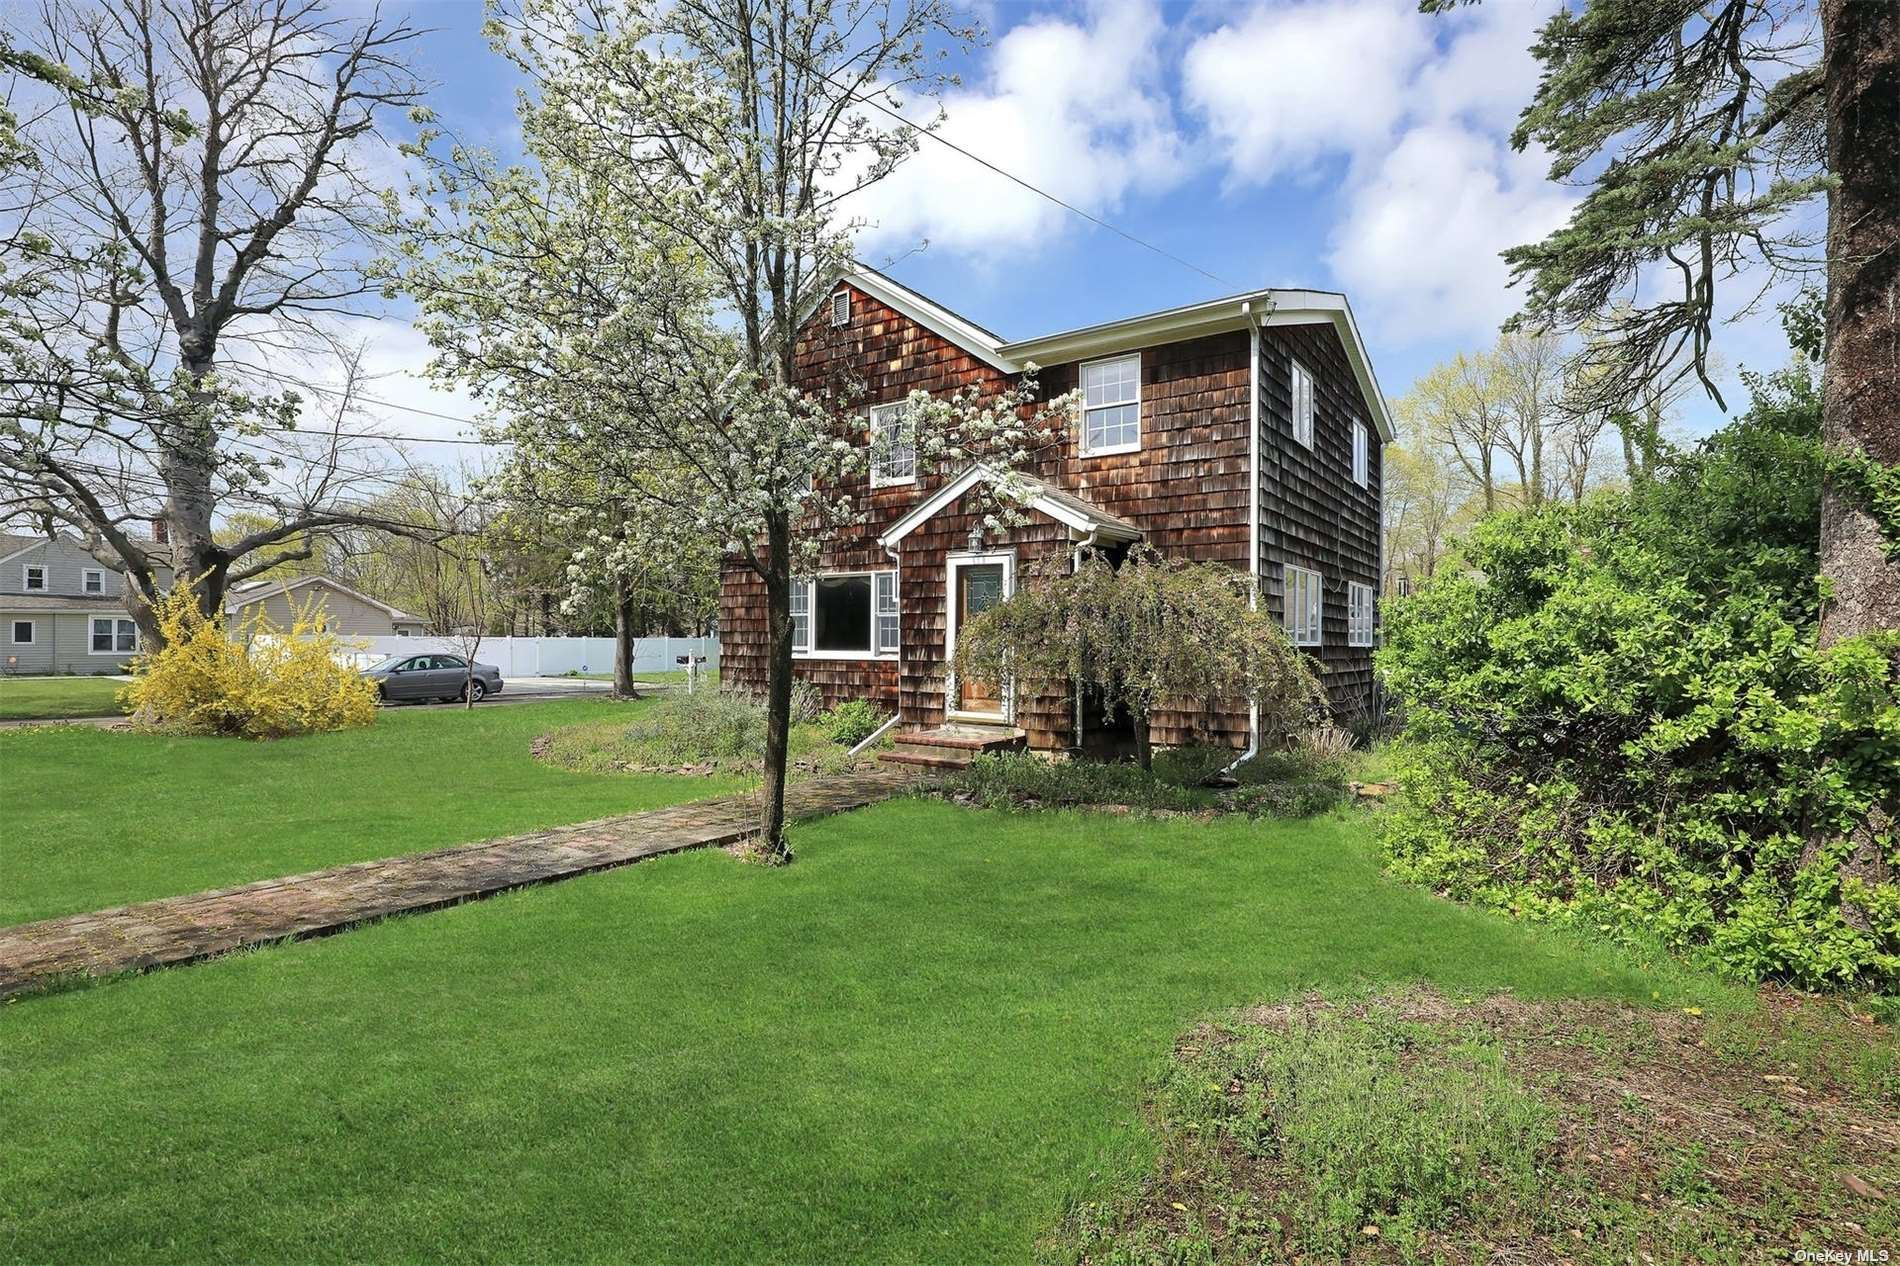 Photo of 599 S Country Road, E. Patchogue, NY 11772 (MLS # 3306236)